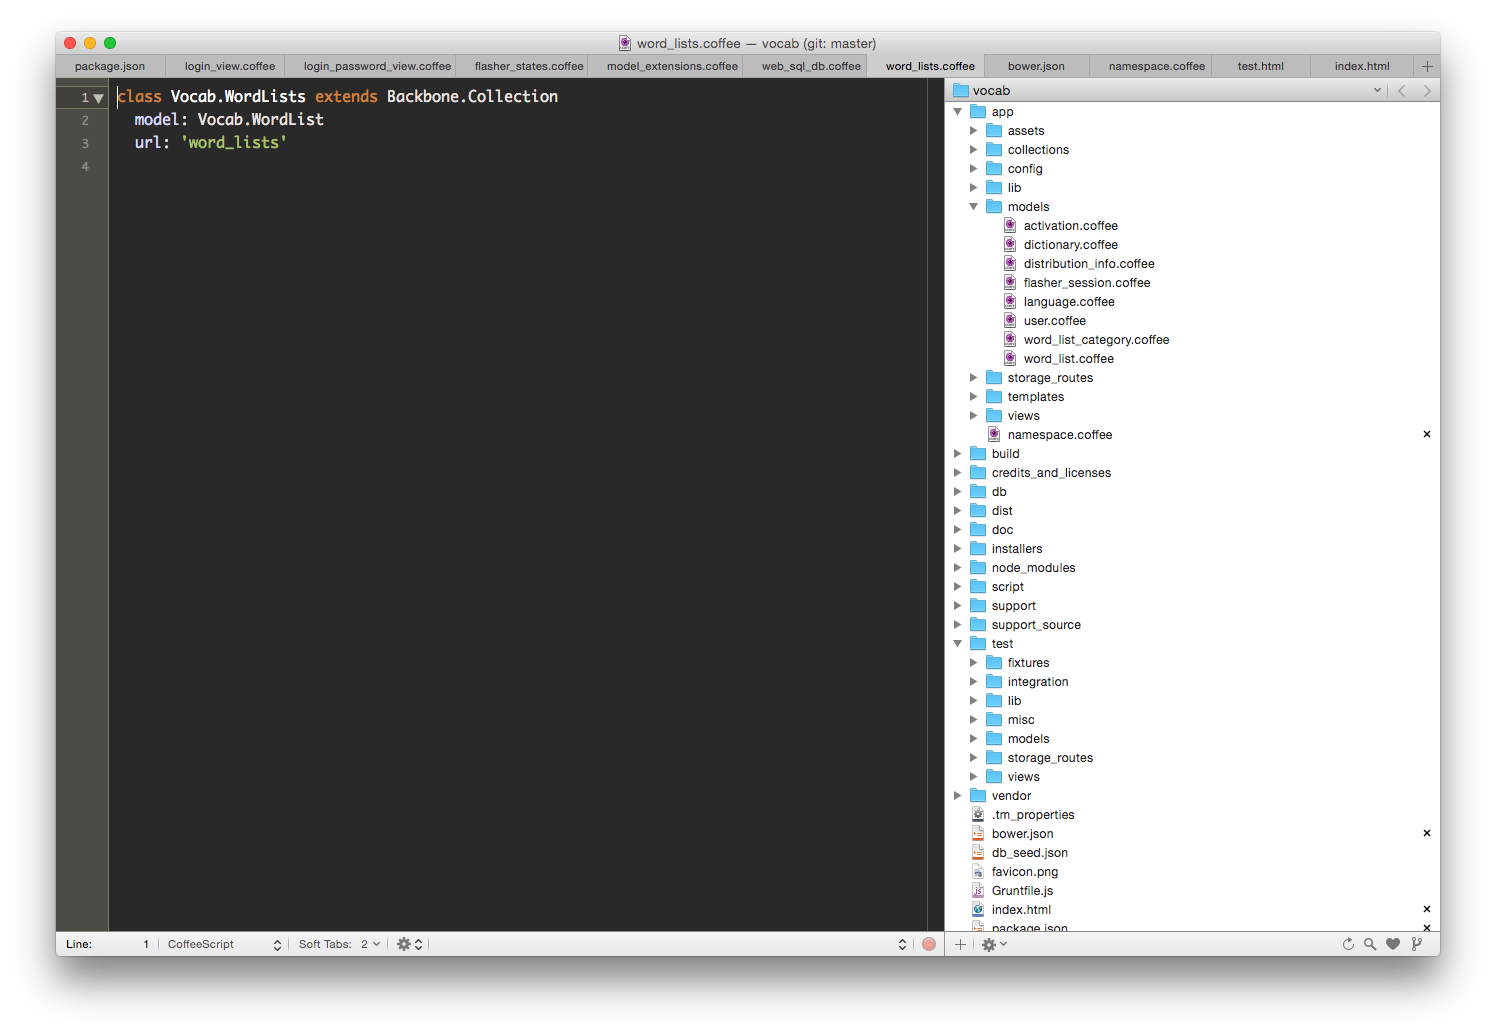 Code structure heavily influenced by Rails. Don't be fooled though, this is 100% client side, CoffeeScript, HTML & SASS.